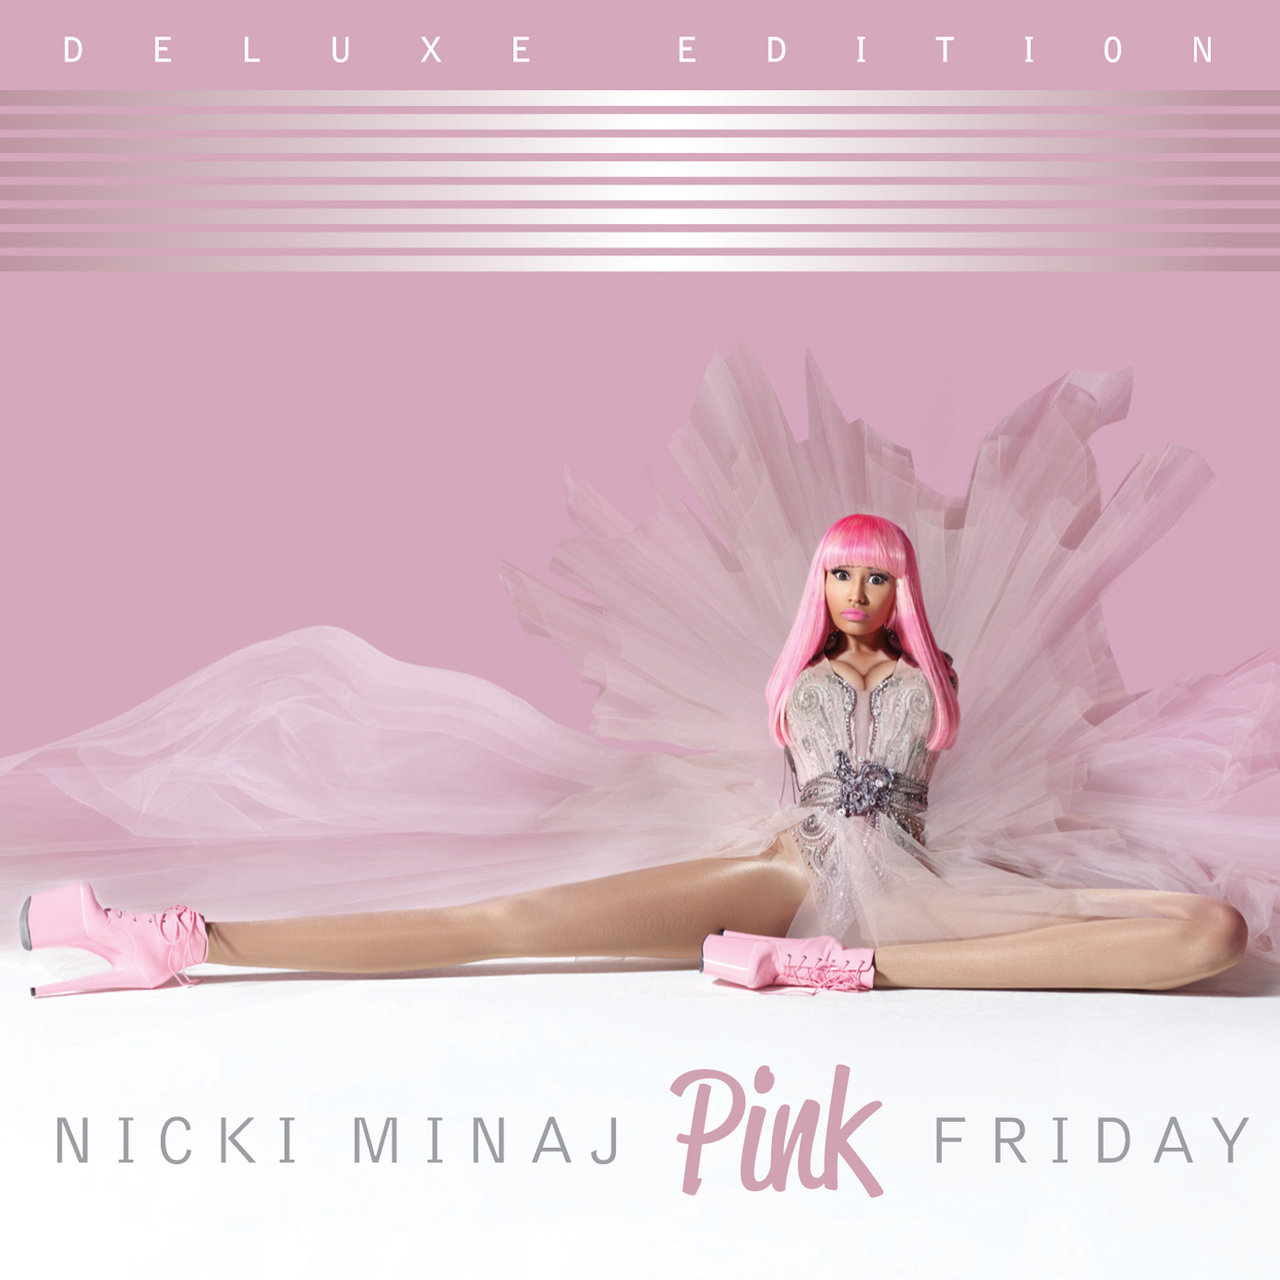 Pink Friday (Deluxe Edition)